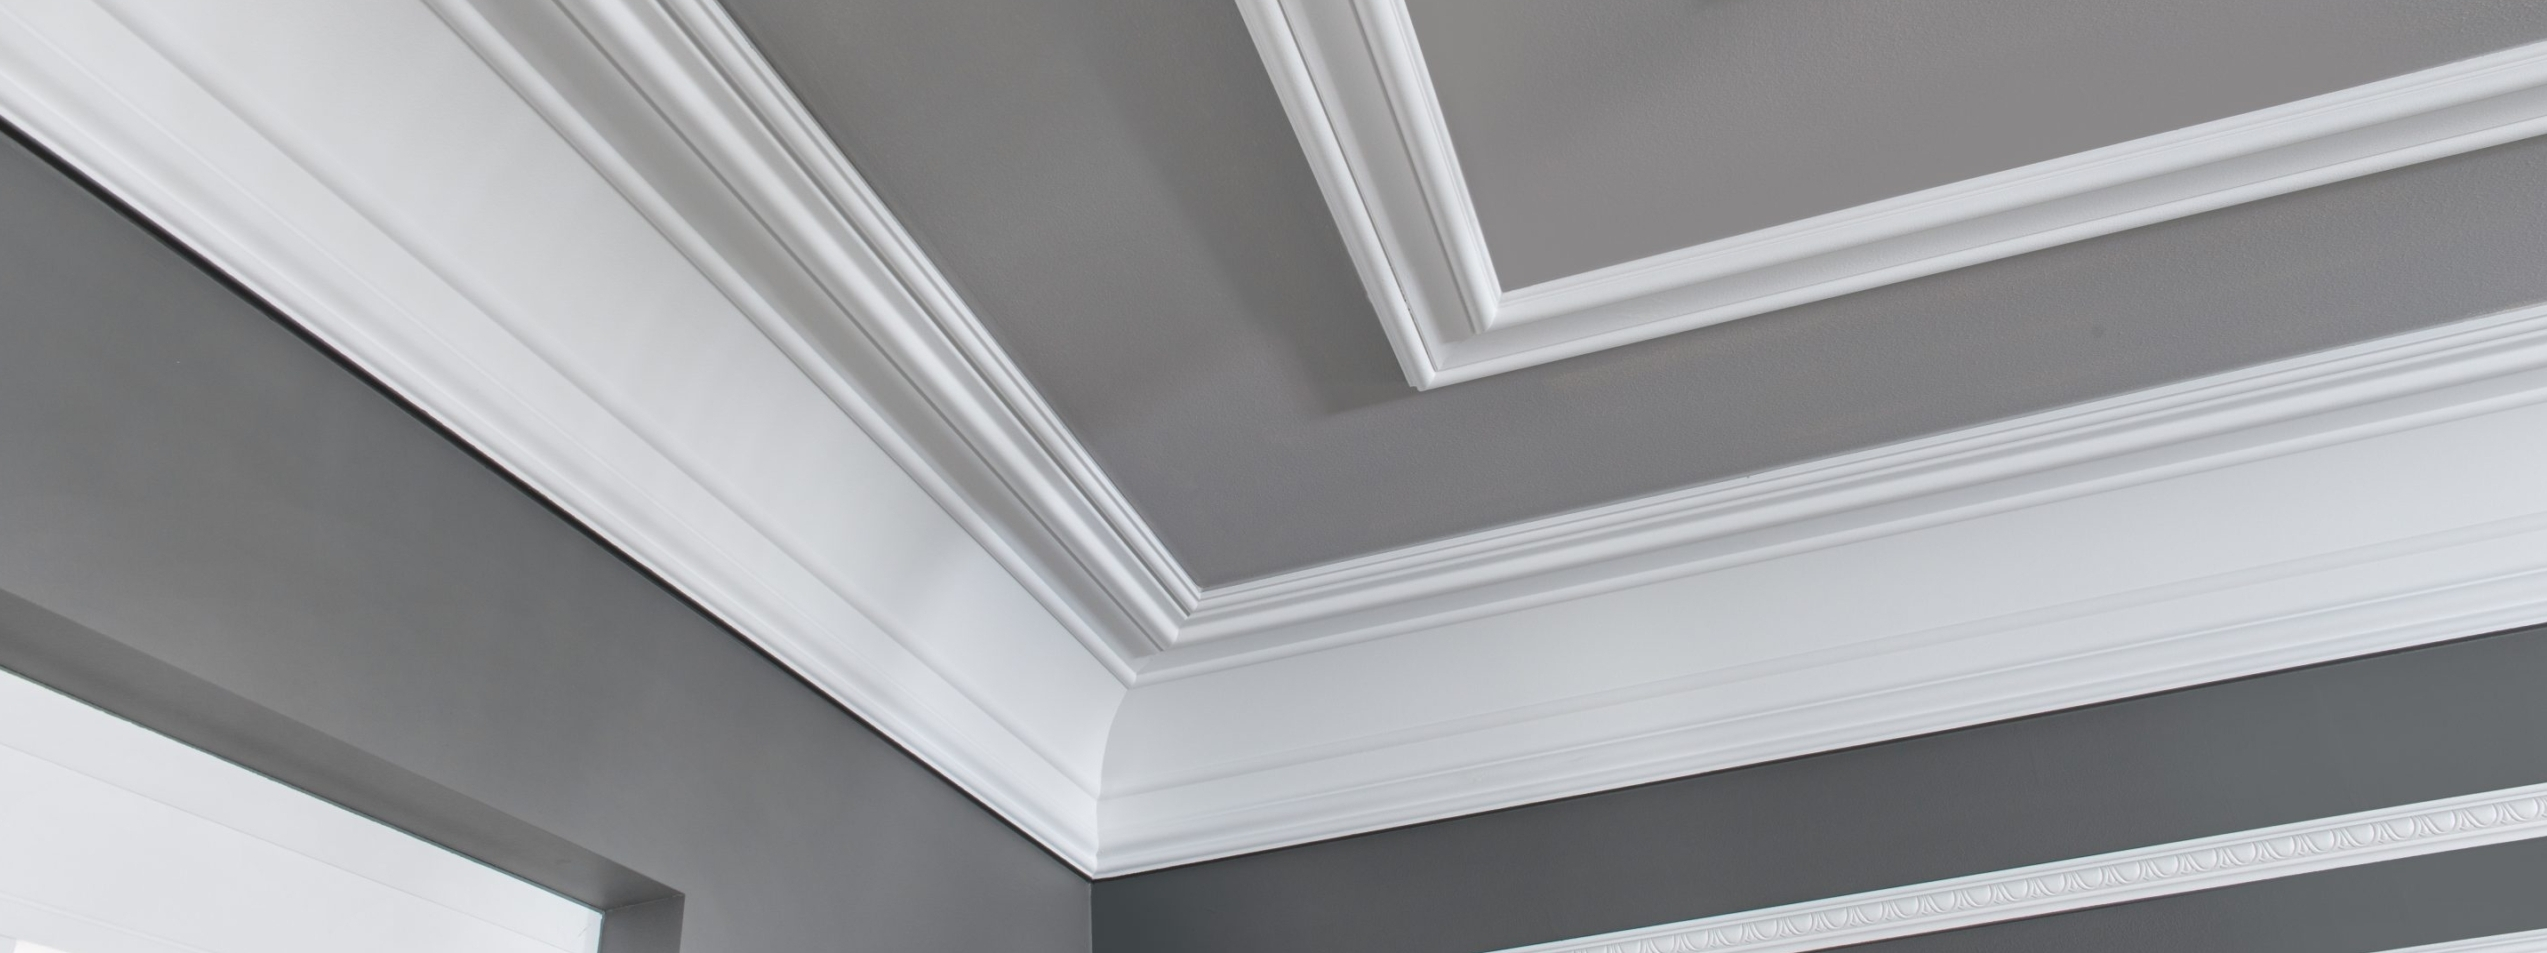 Banner image of coving using WL2 profile